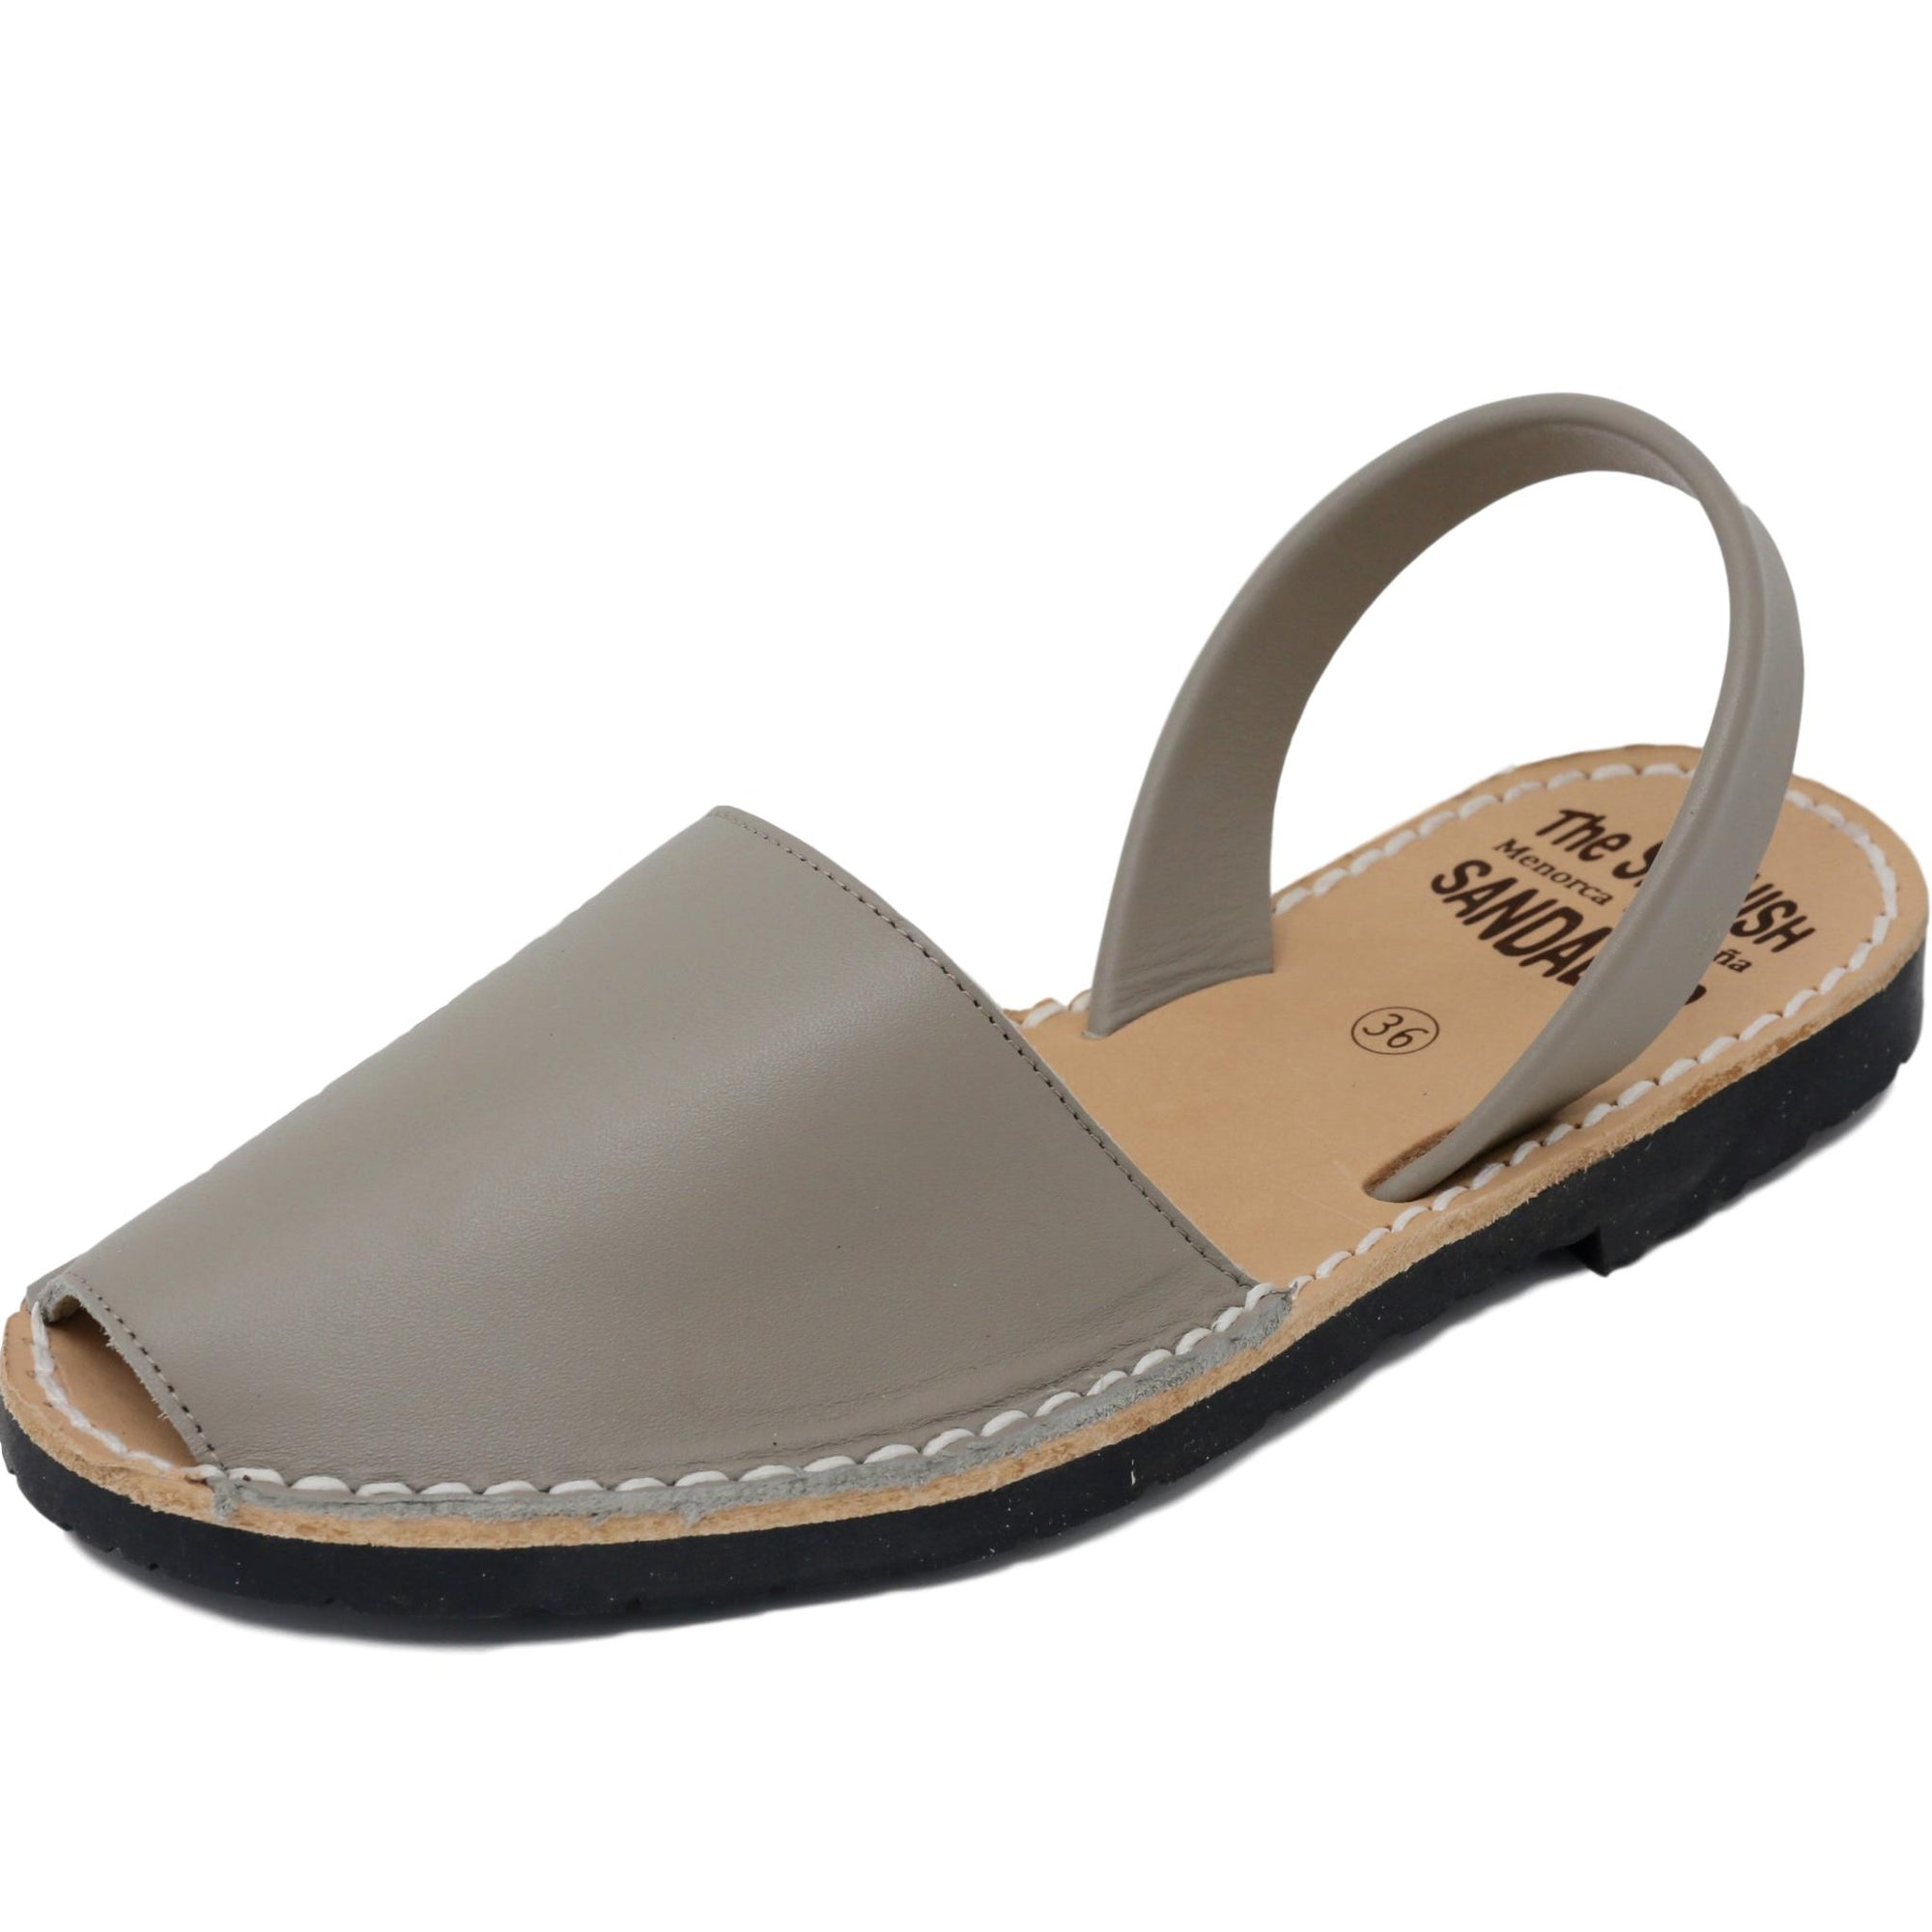 Classic taupe sandals - diagonal view